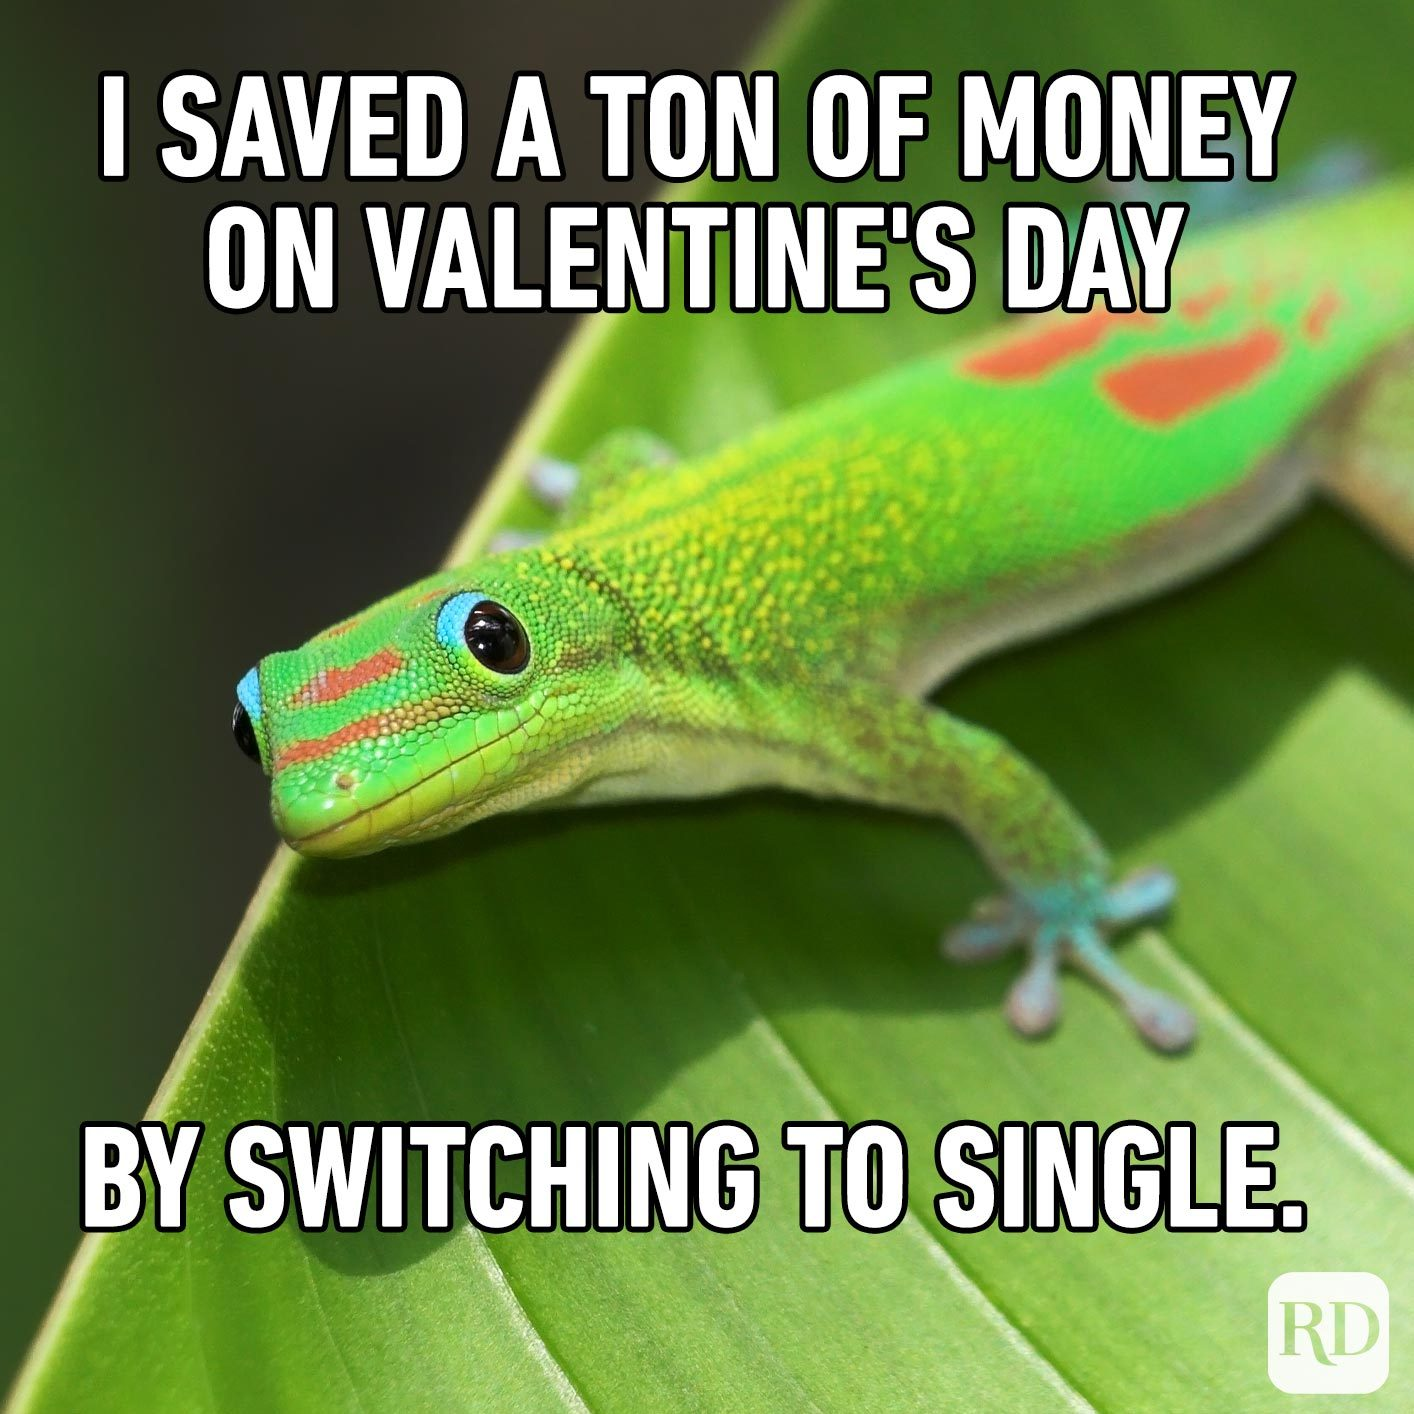 Gecko on leaf. Meme text: I saved a ton of money on Valentine's Day by switching to single.